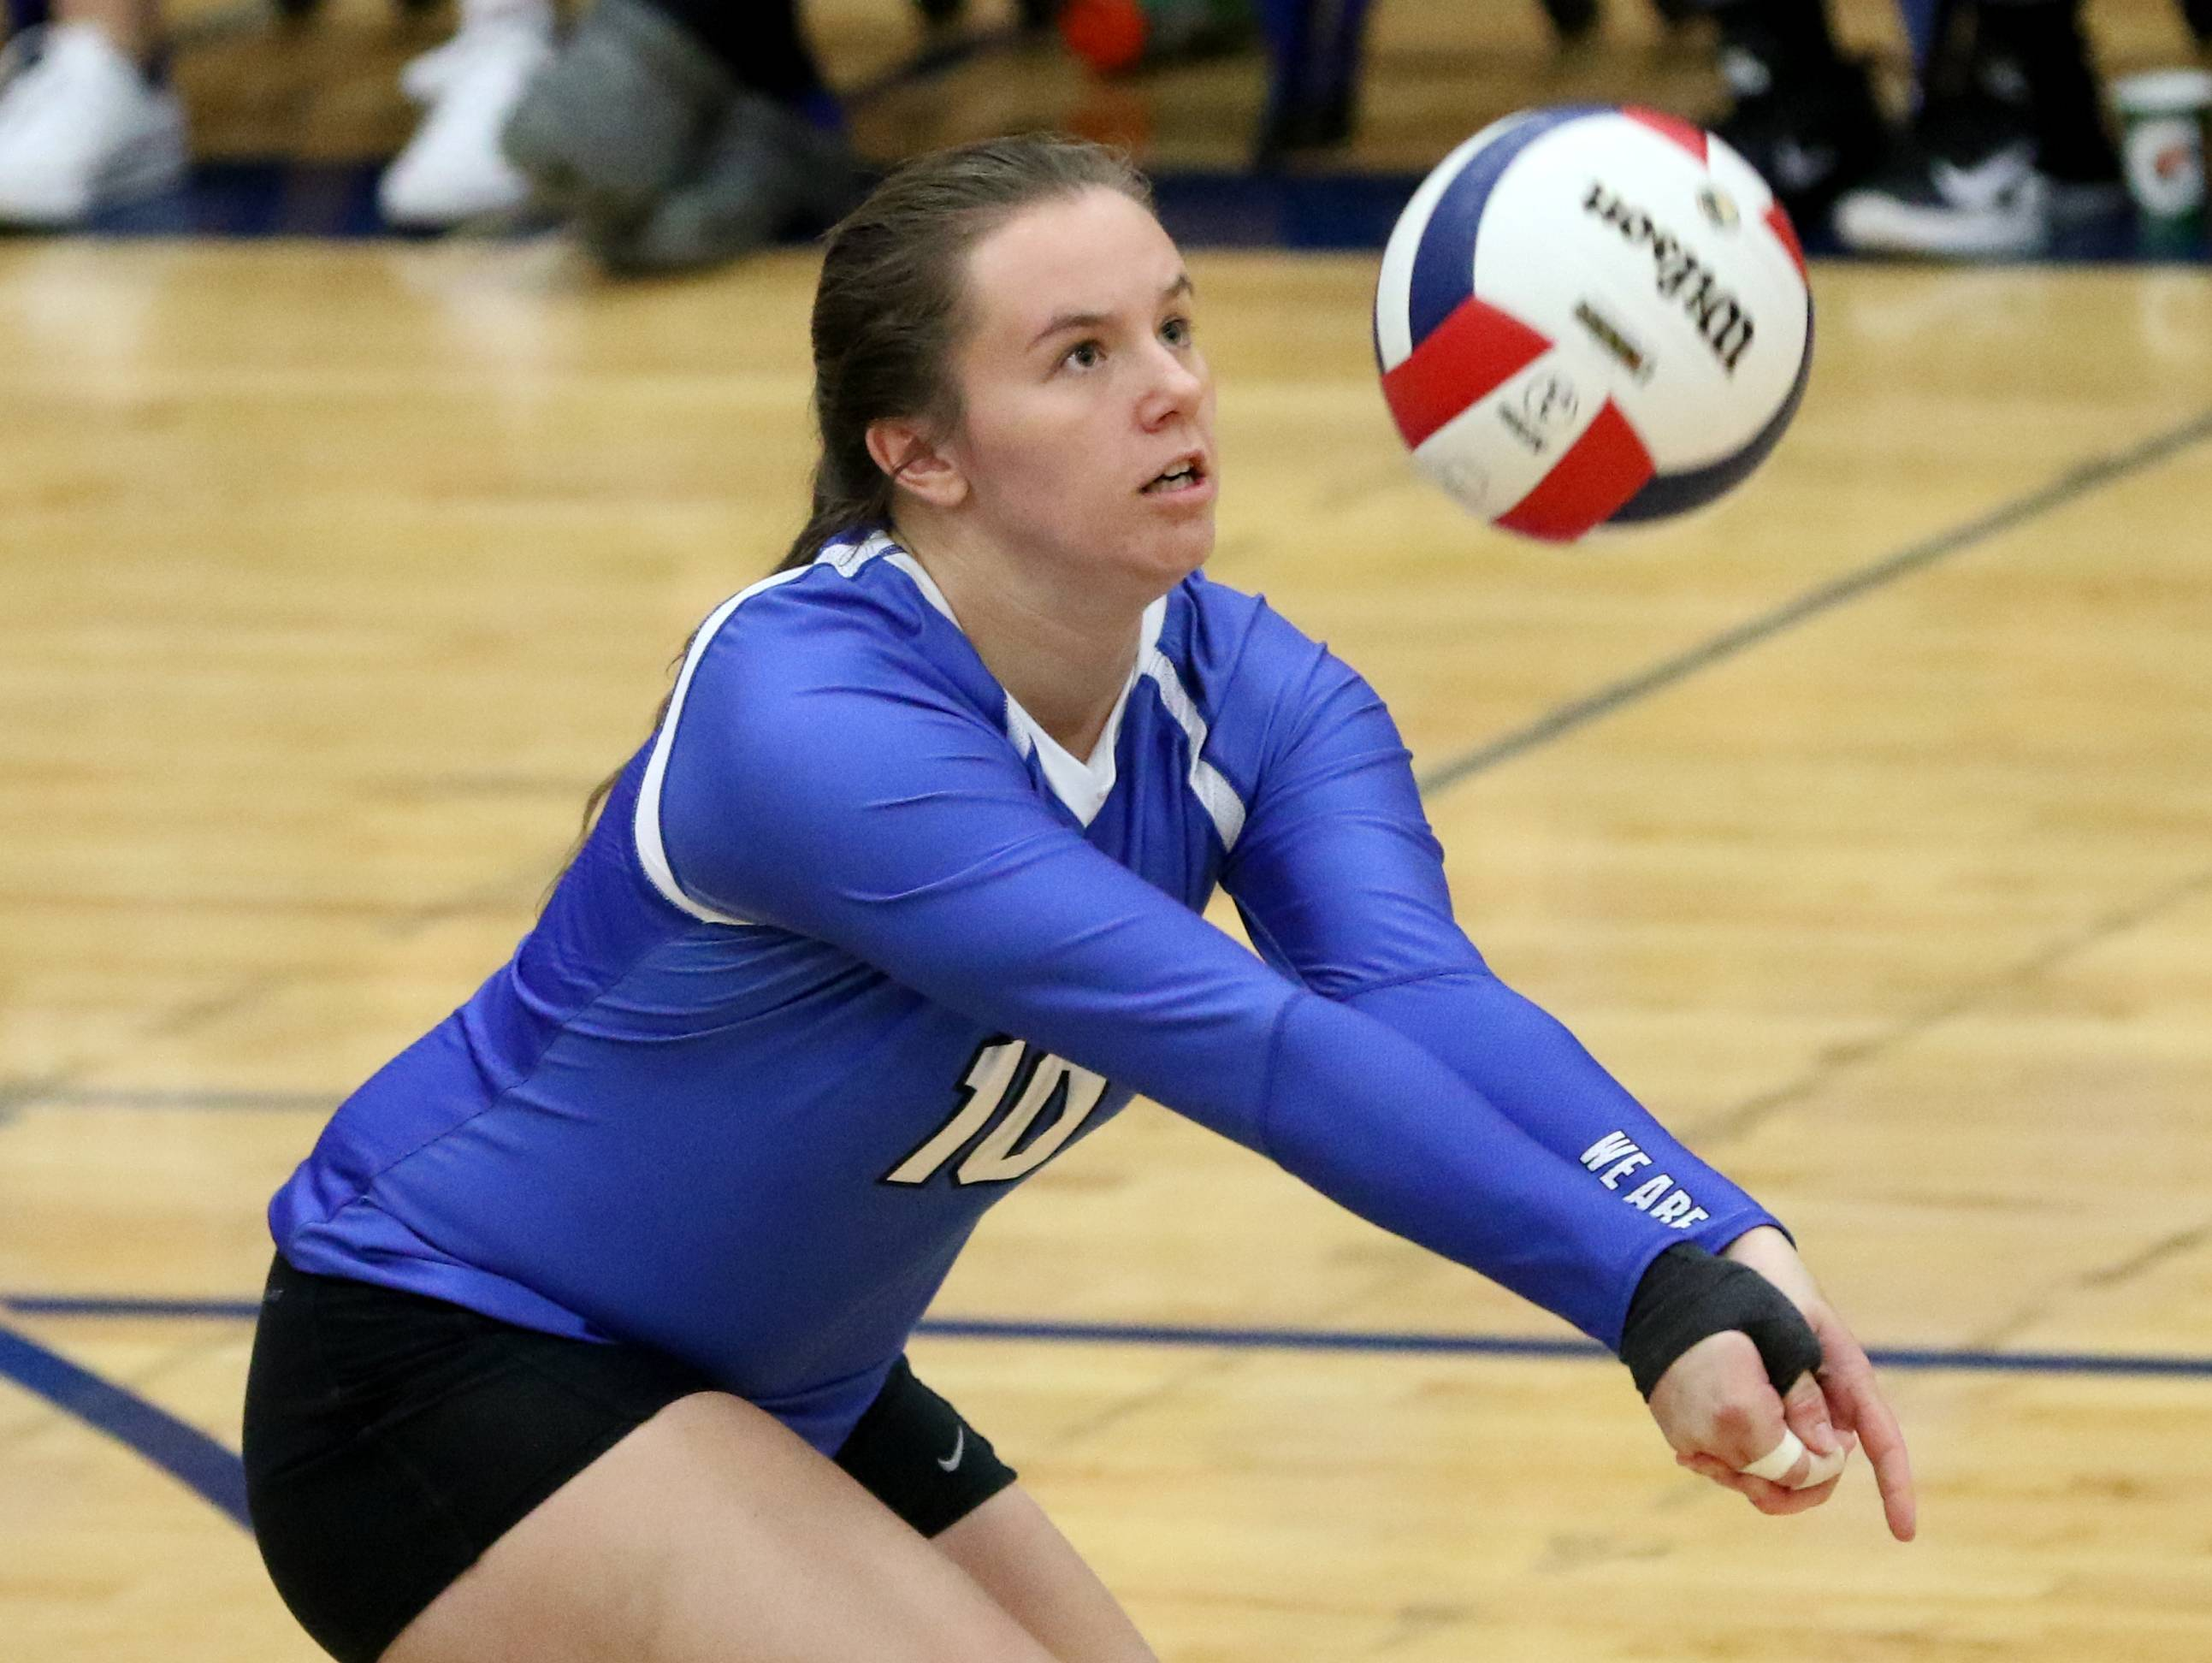 Larkin's Ashley Miller passes the ball against Elgin in varsity girls volleyball at Larkin on Wednesday.